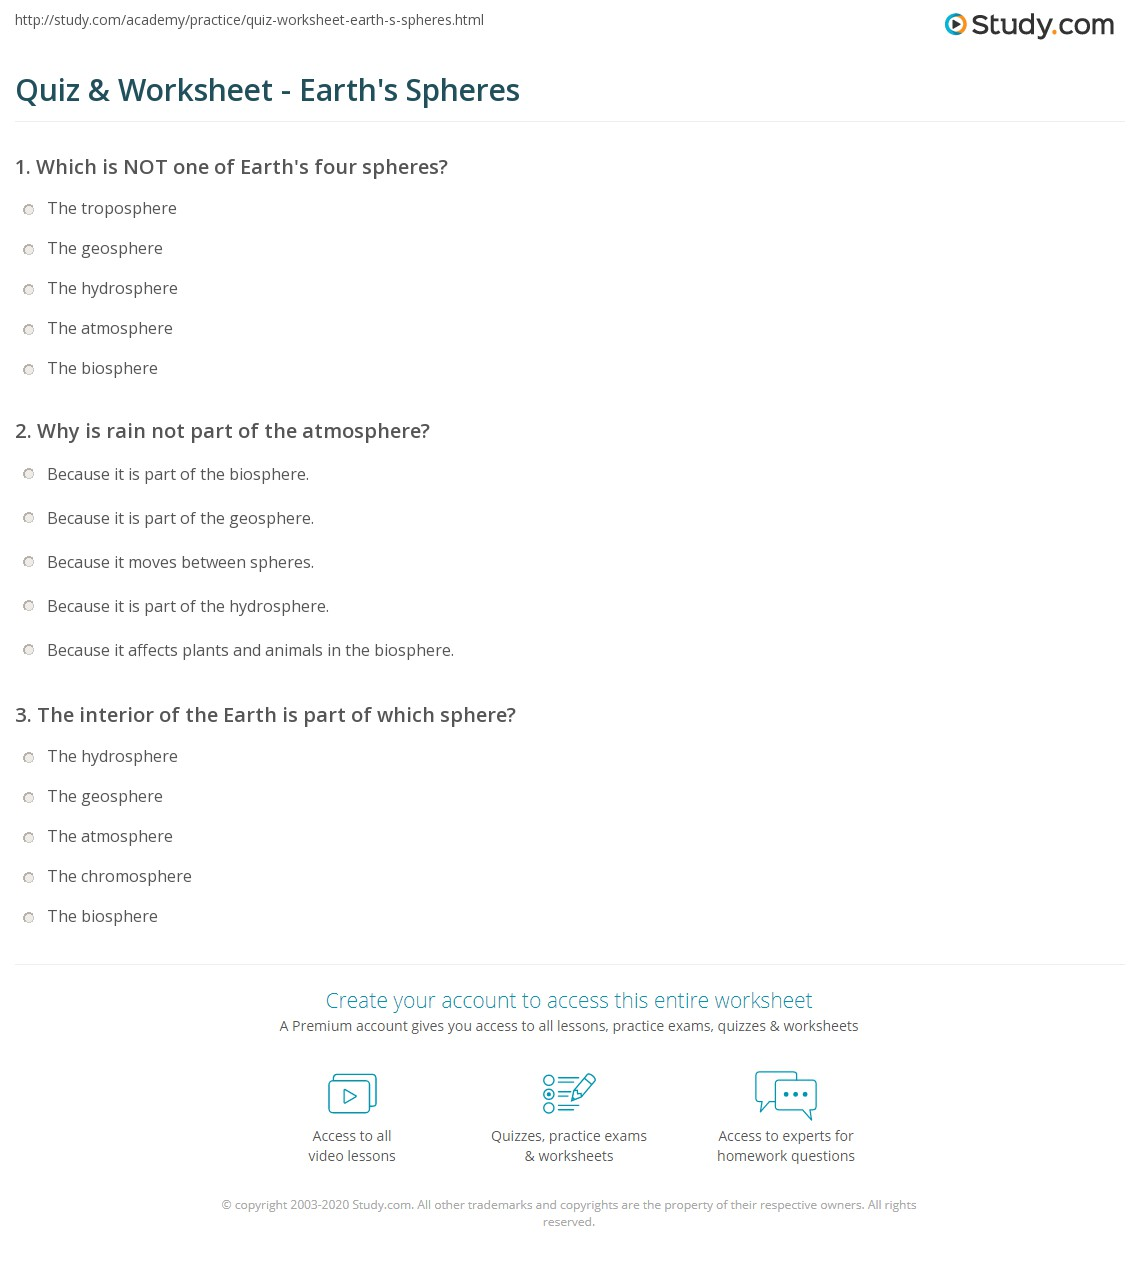 worksheet Biosphere Worksheet quiz worksheet earths spheres study com print the four of earth geosphere hydrosphere biosphere and atmosphere worksheet